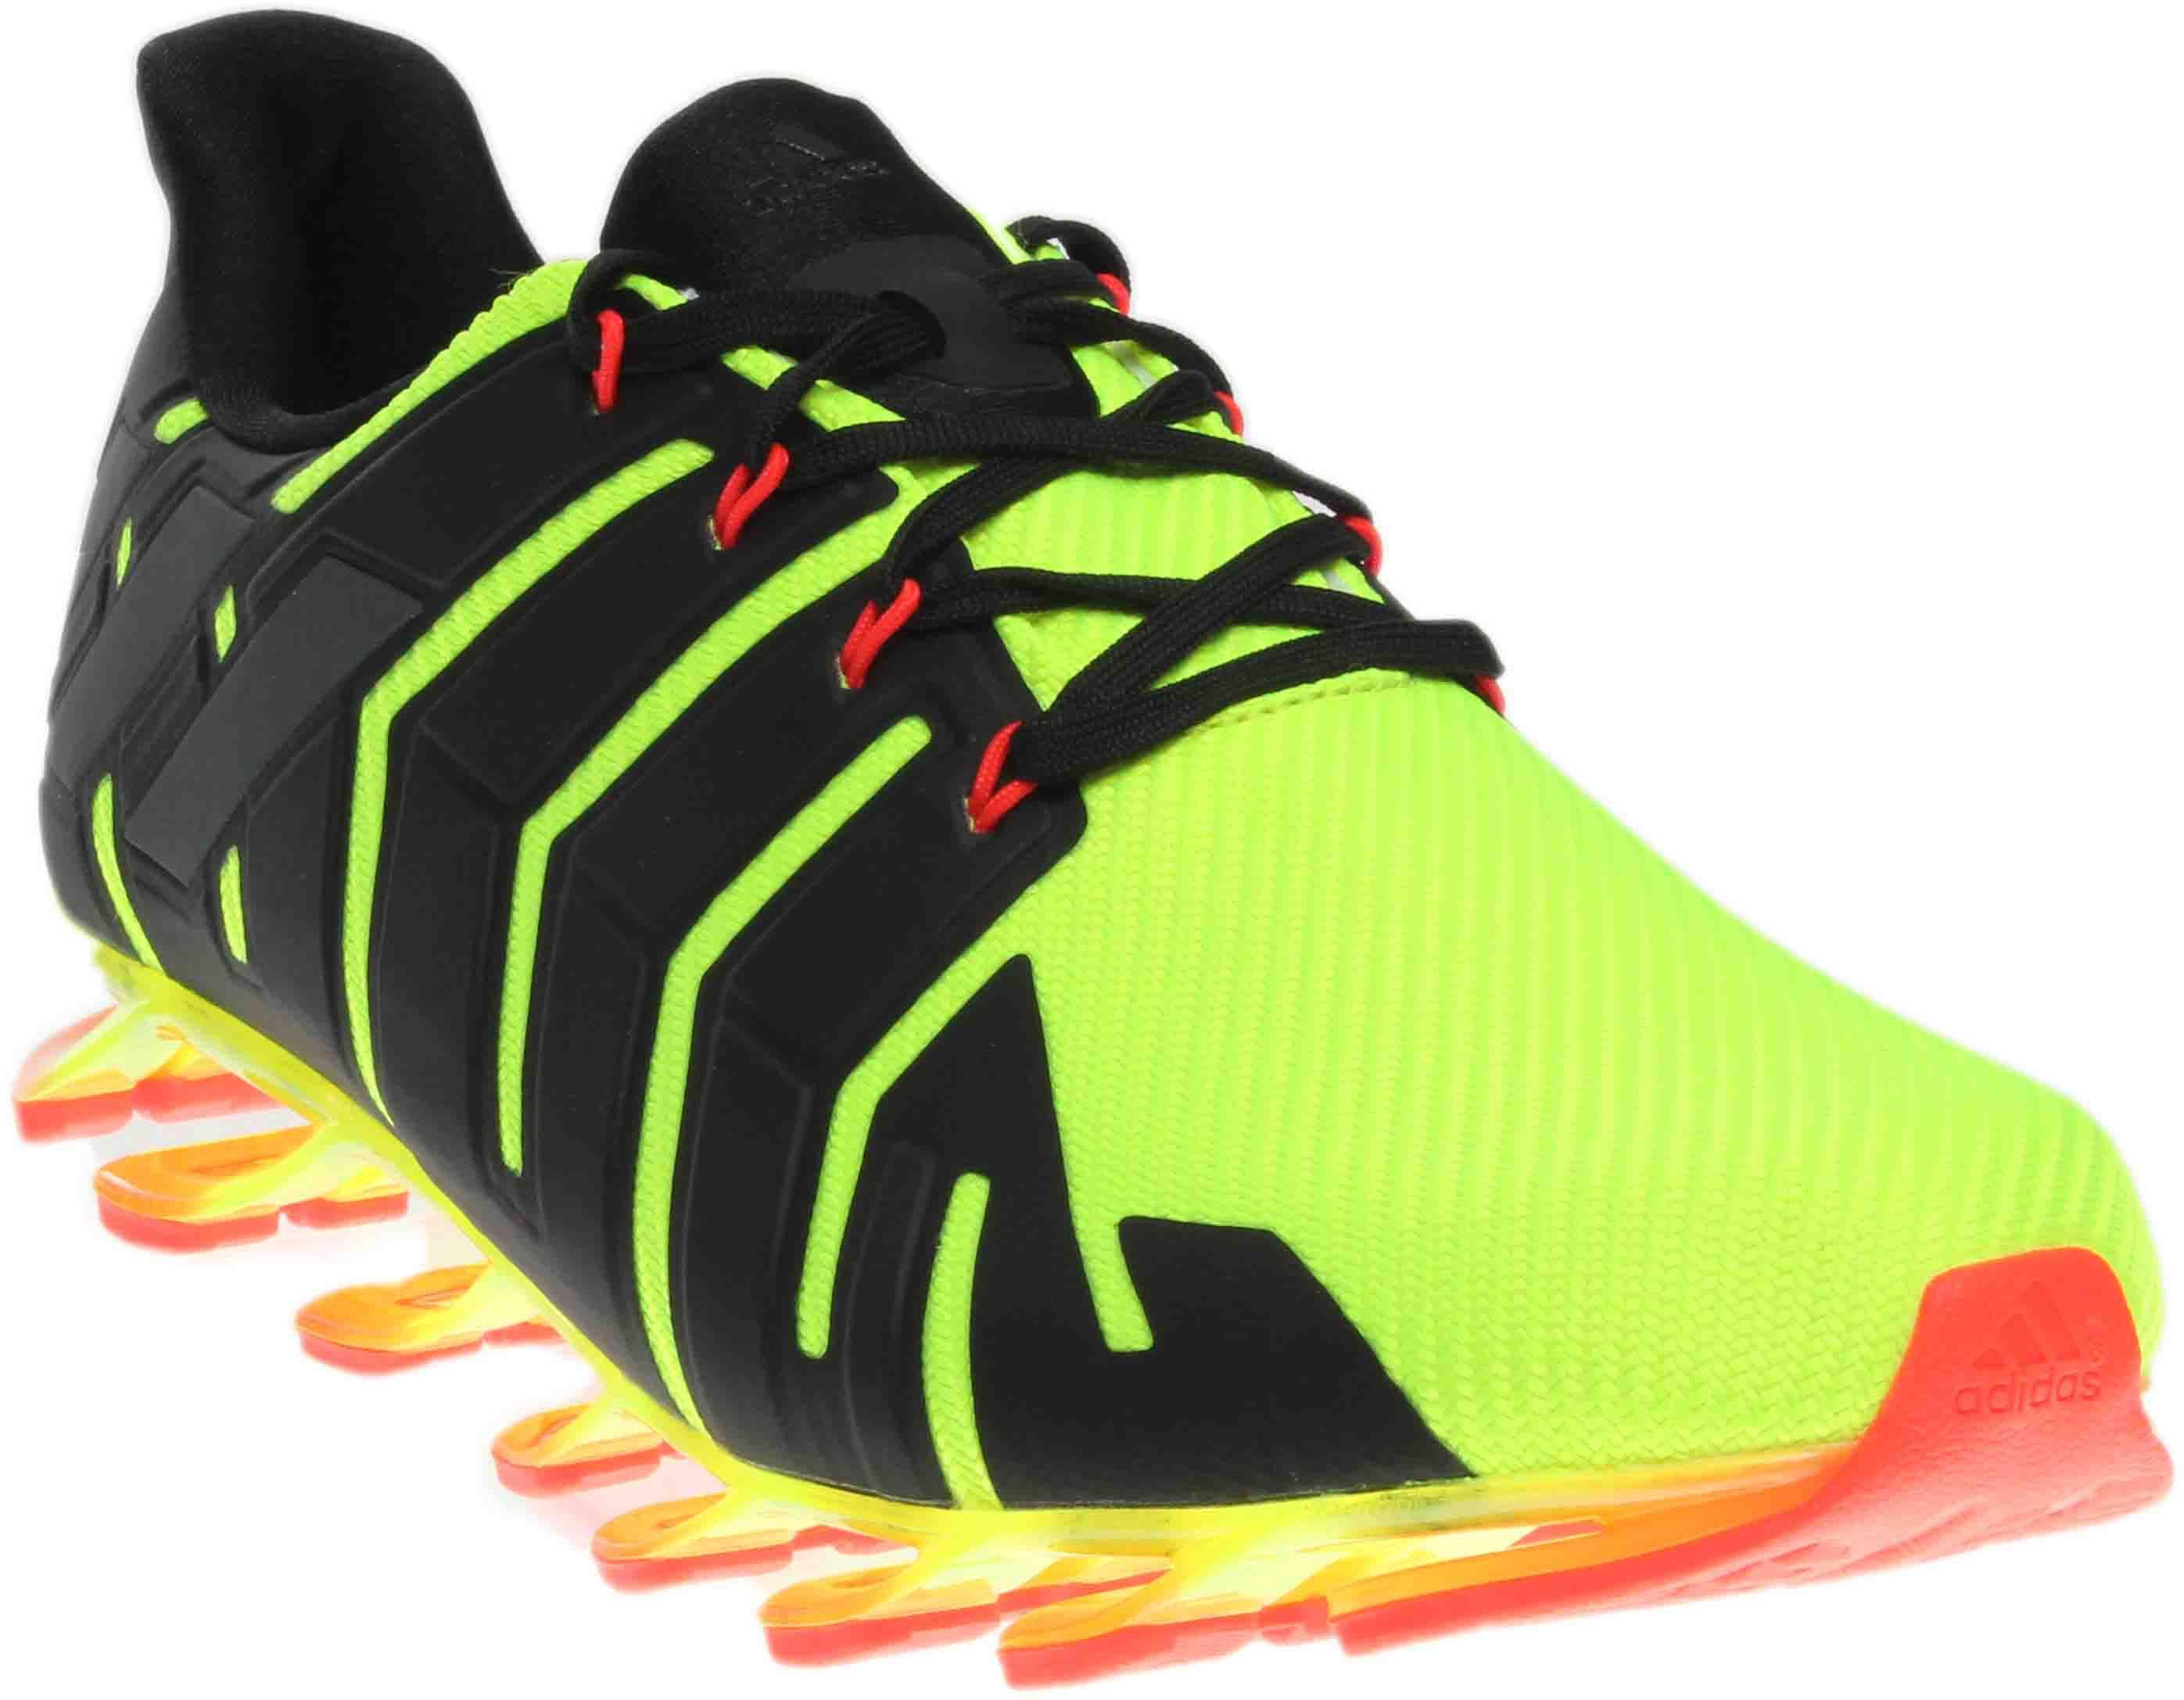 5b0718c1251e Lyst - adidas Springblade Pro in Yellow for Men